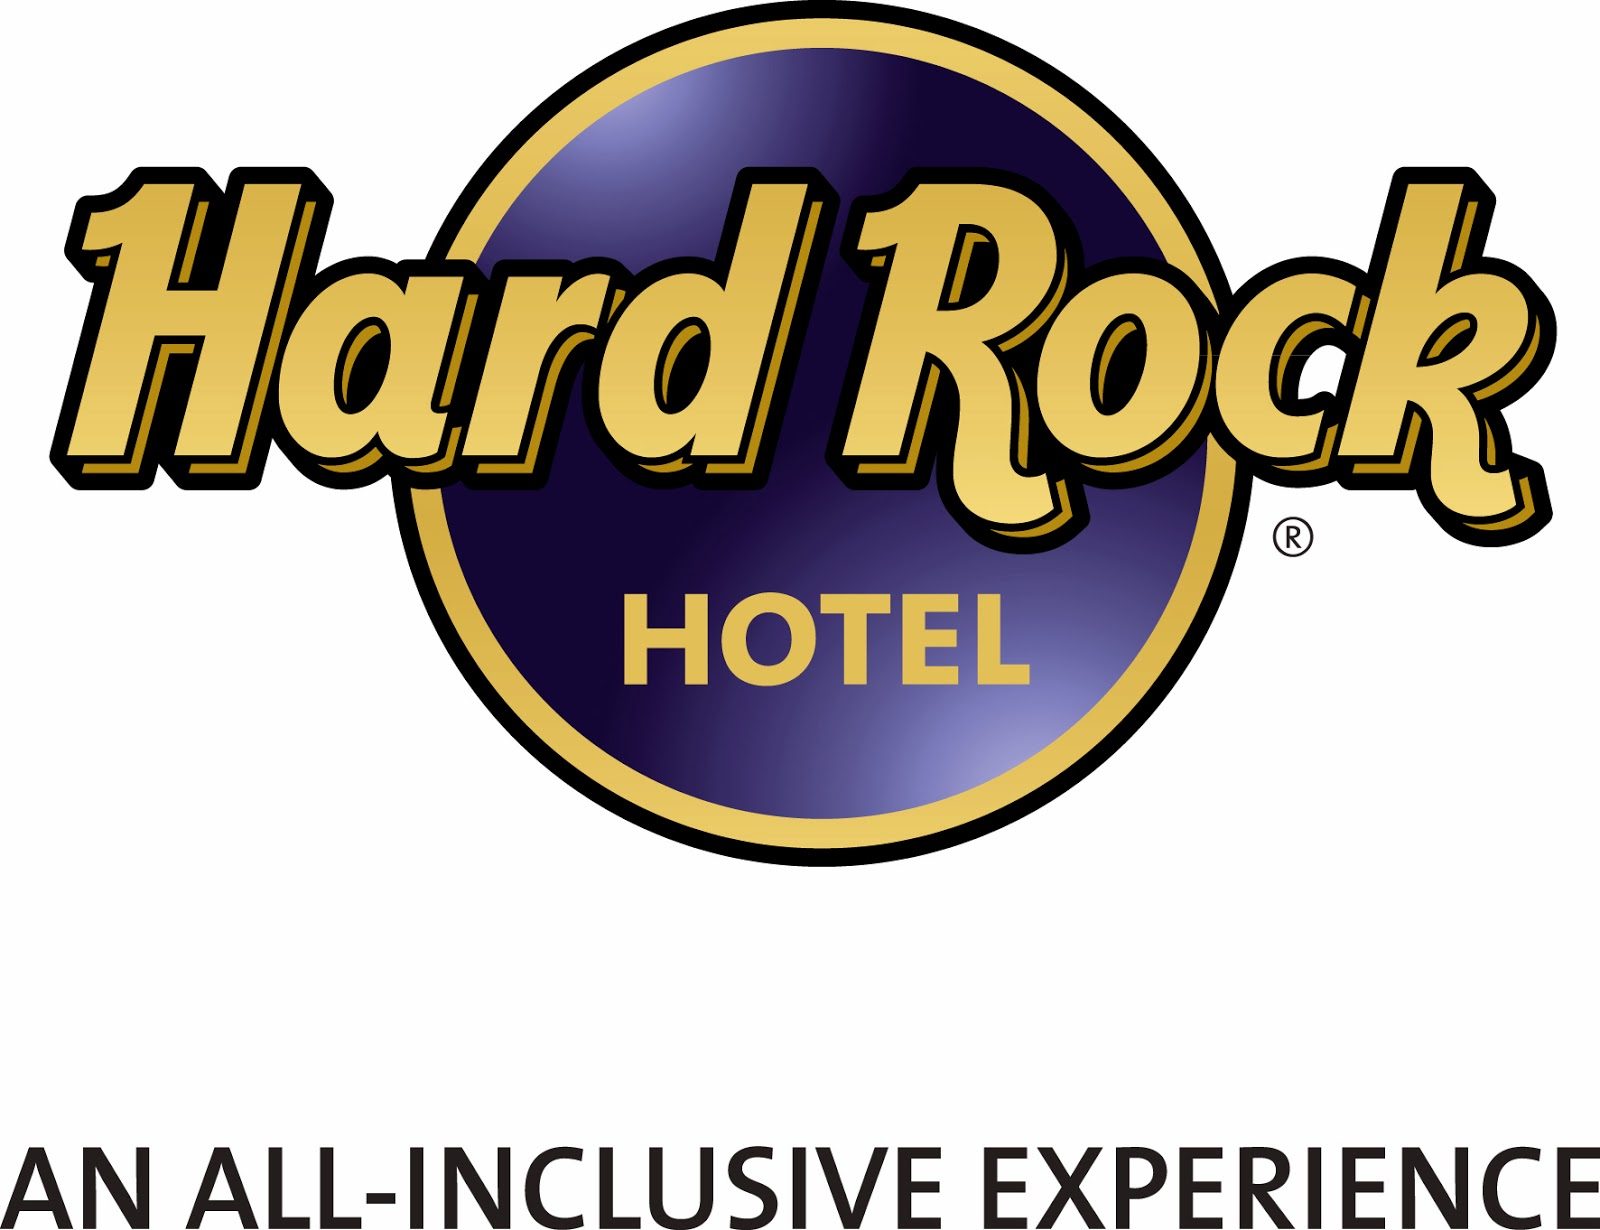 Excellent-Hard-Rock-Hotel-Logo-75-With-Additional-Logo-Contest-with-Hard-Rock-Hotel-Logo.jpg